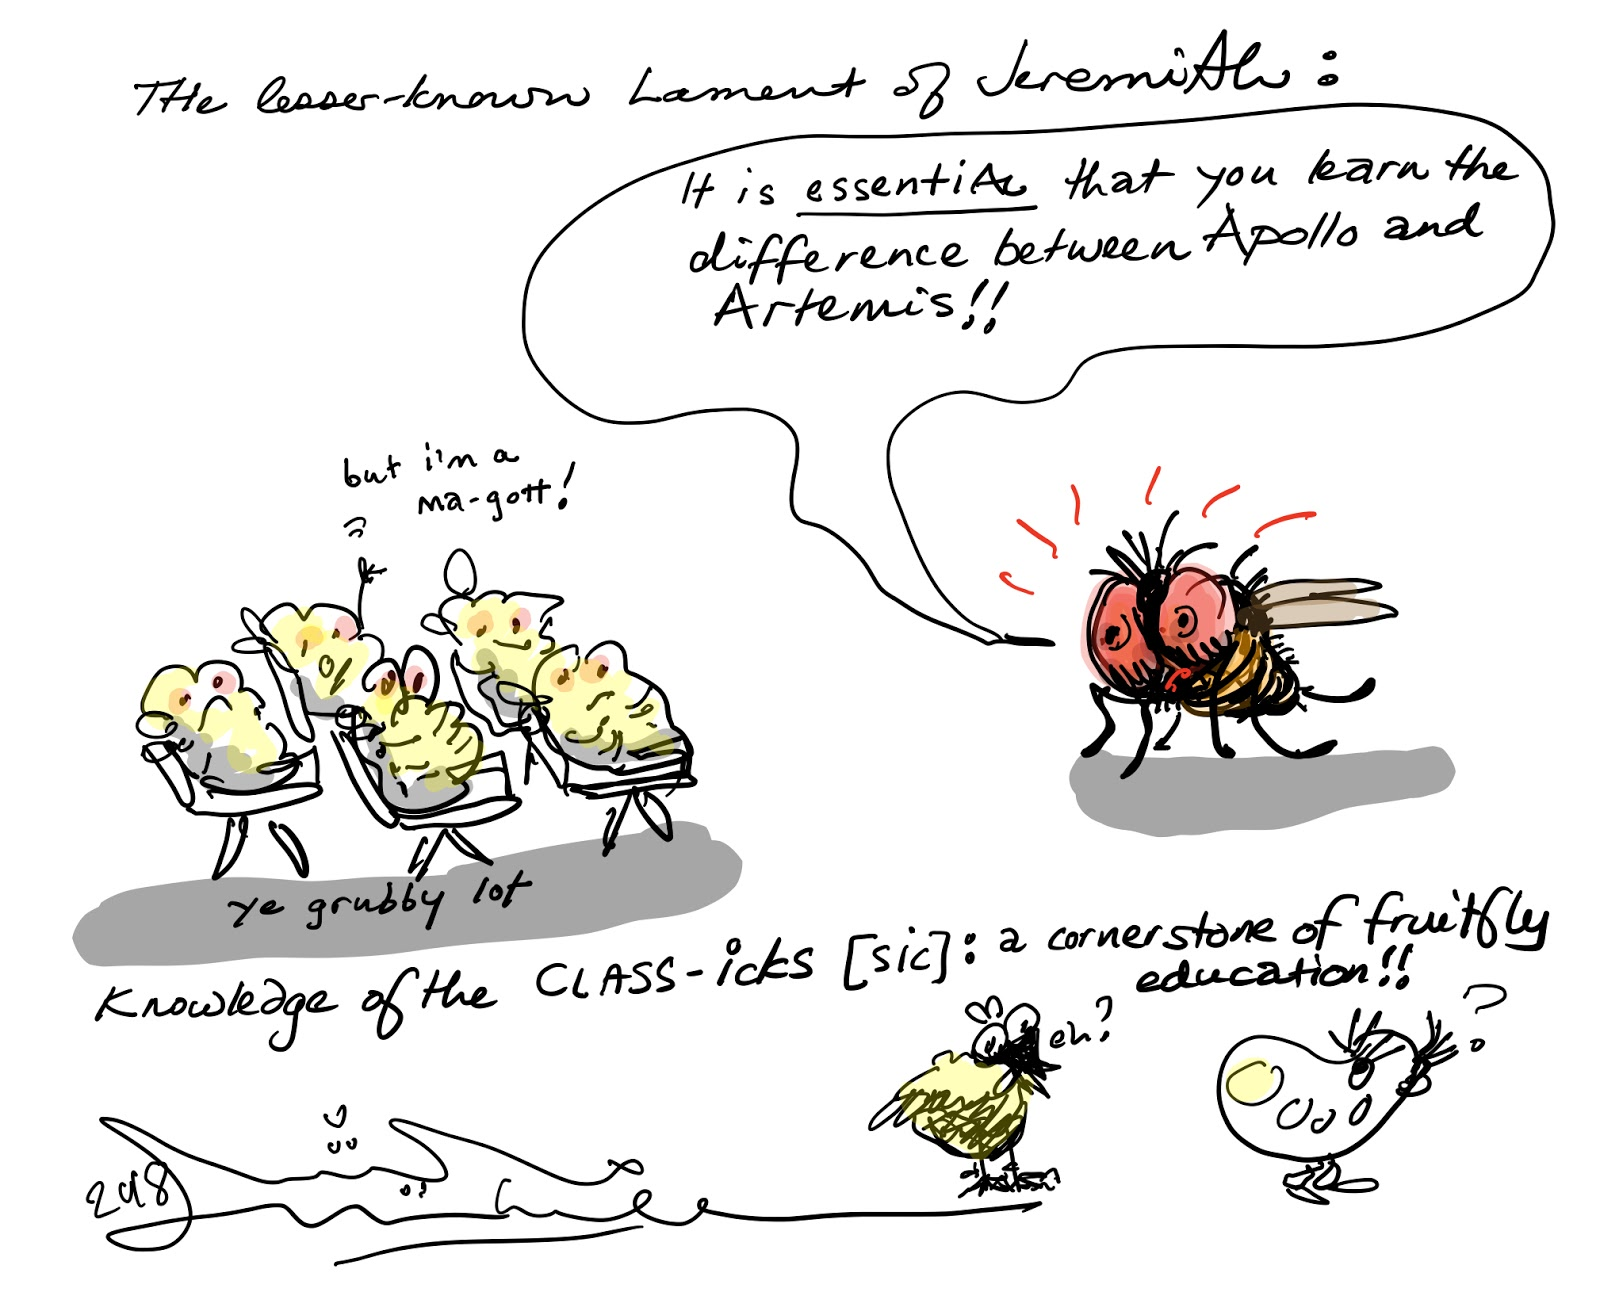 A classical education for fruit flies